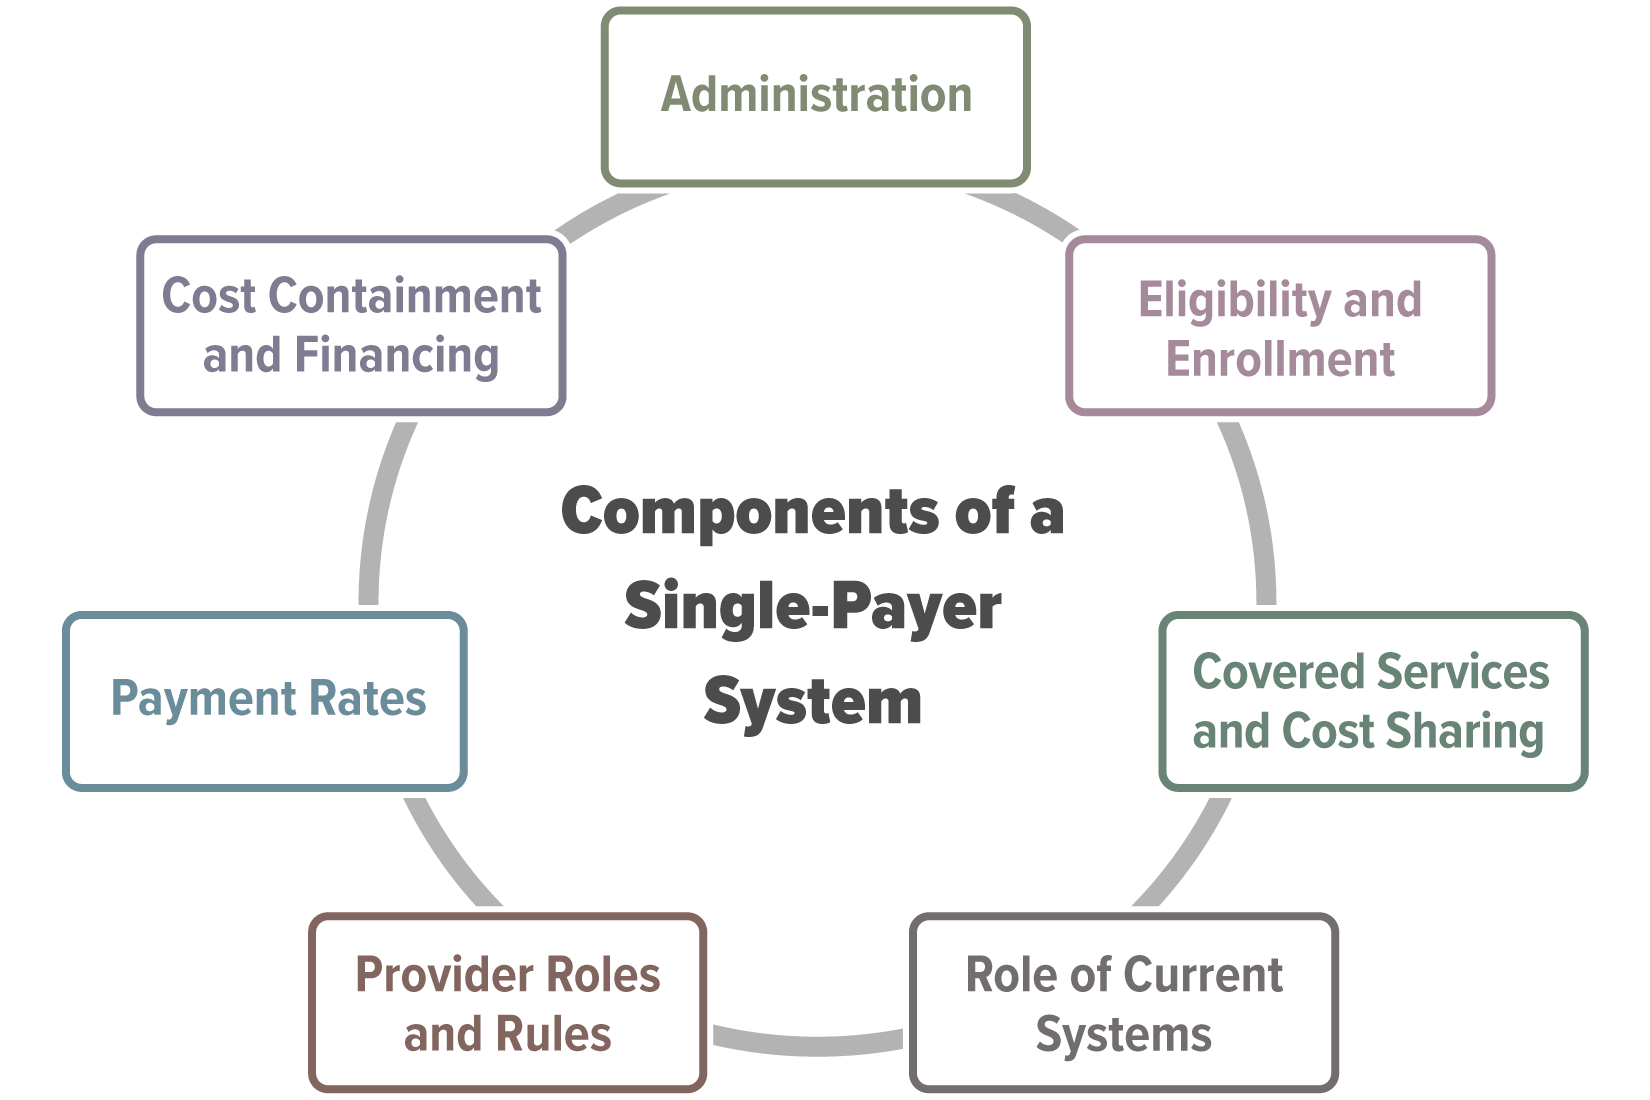 Components of a Single-Payer System